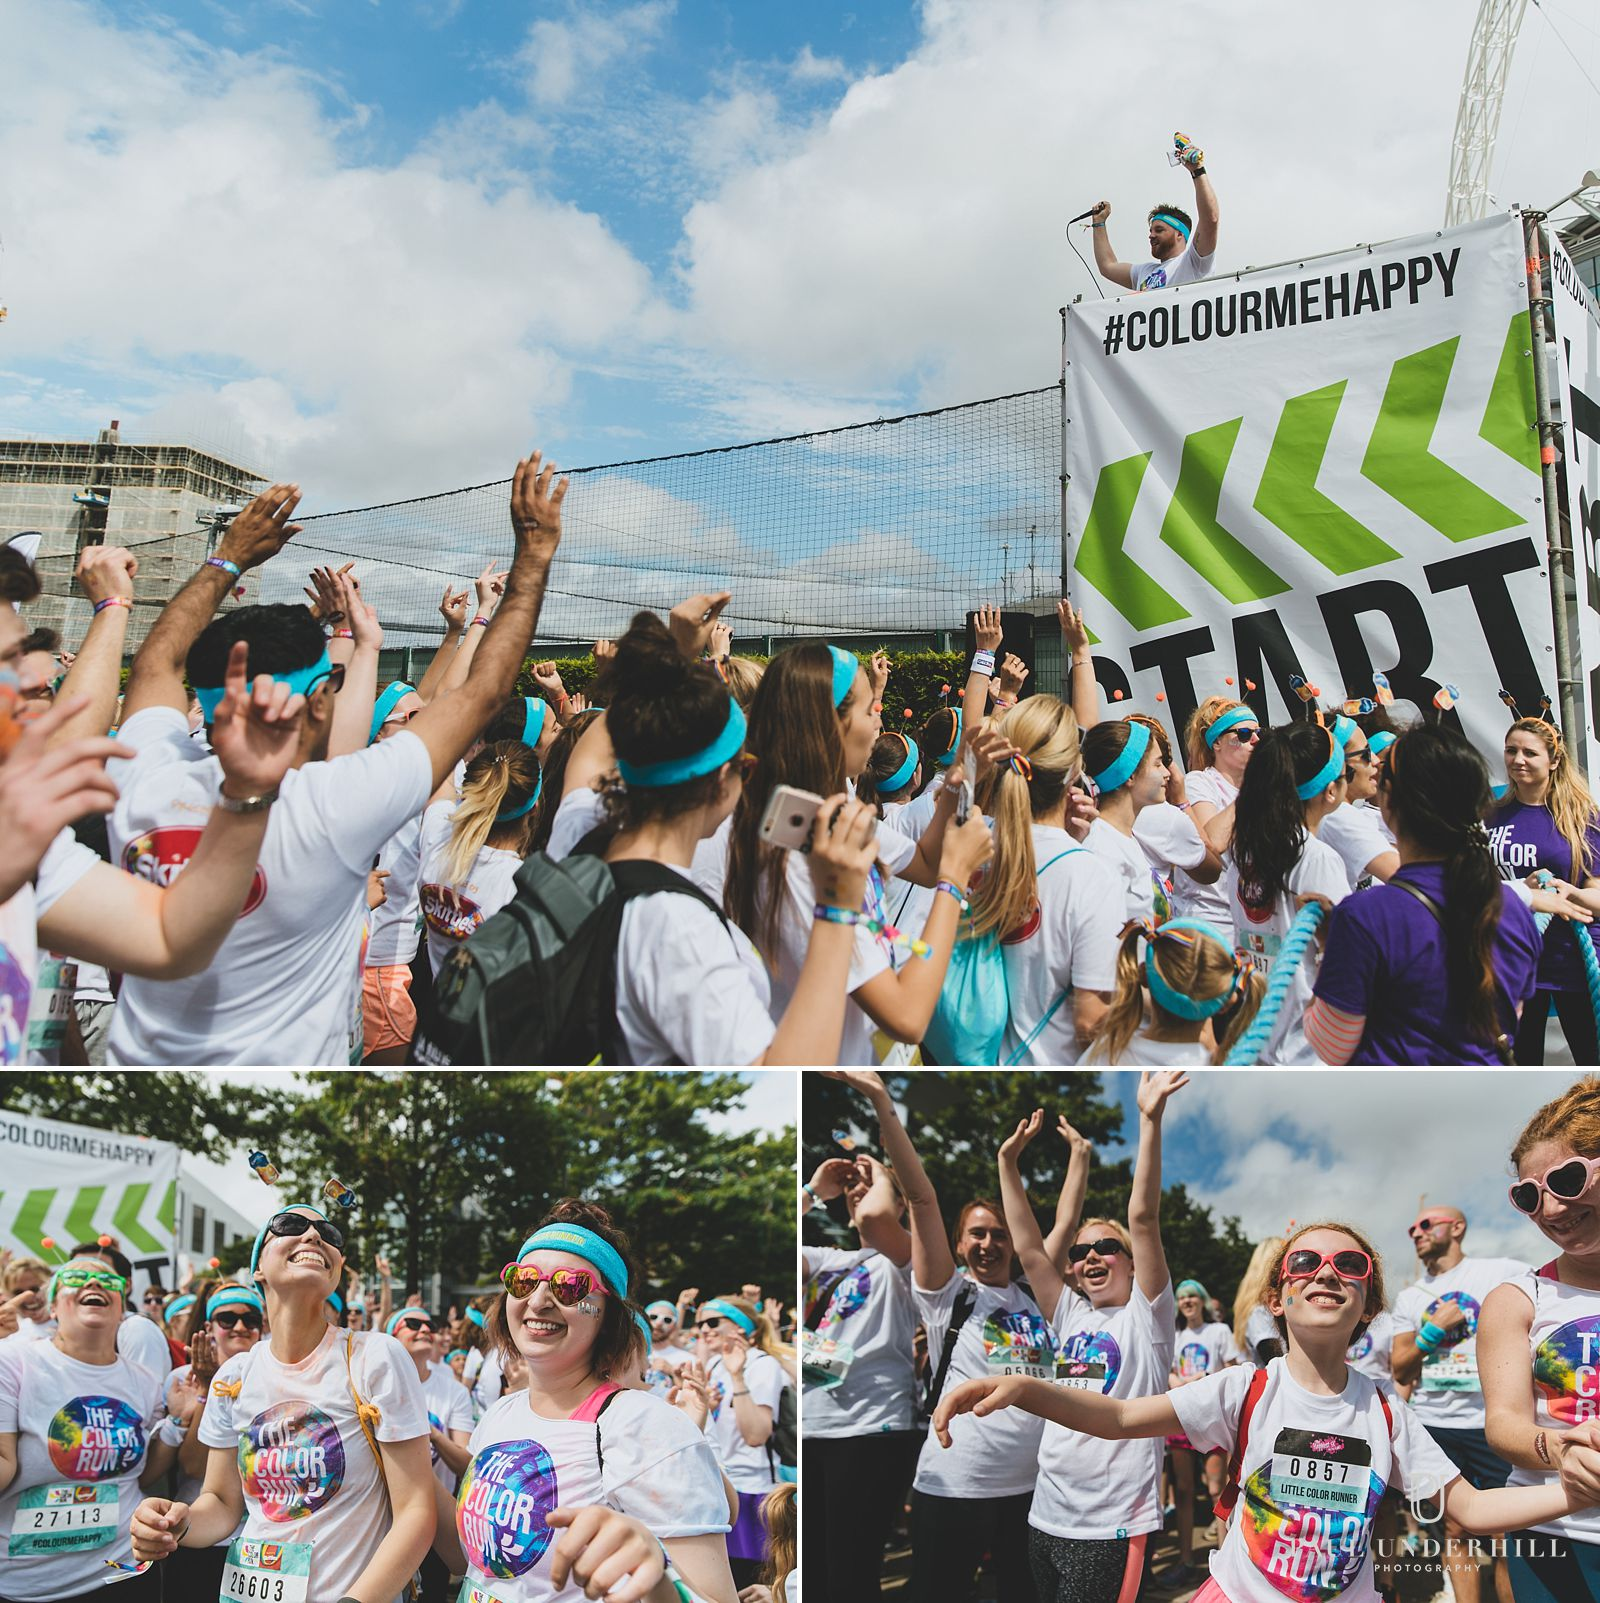 Colour Run at Wembley Park London